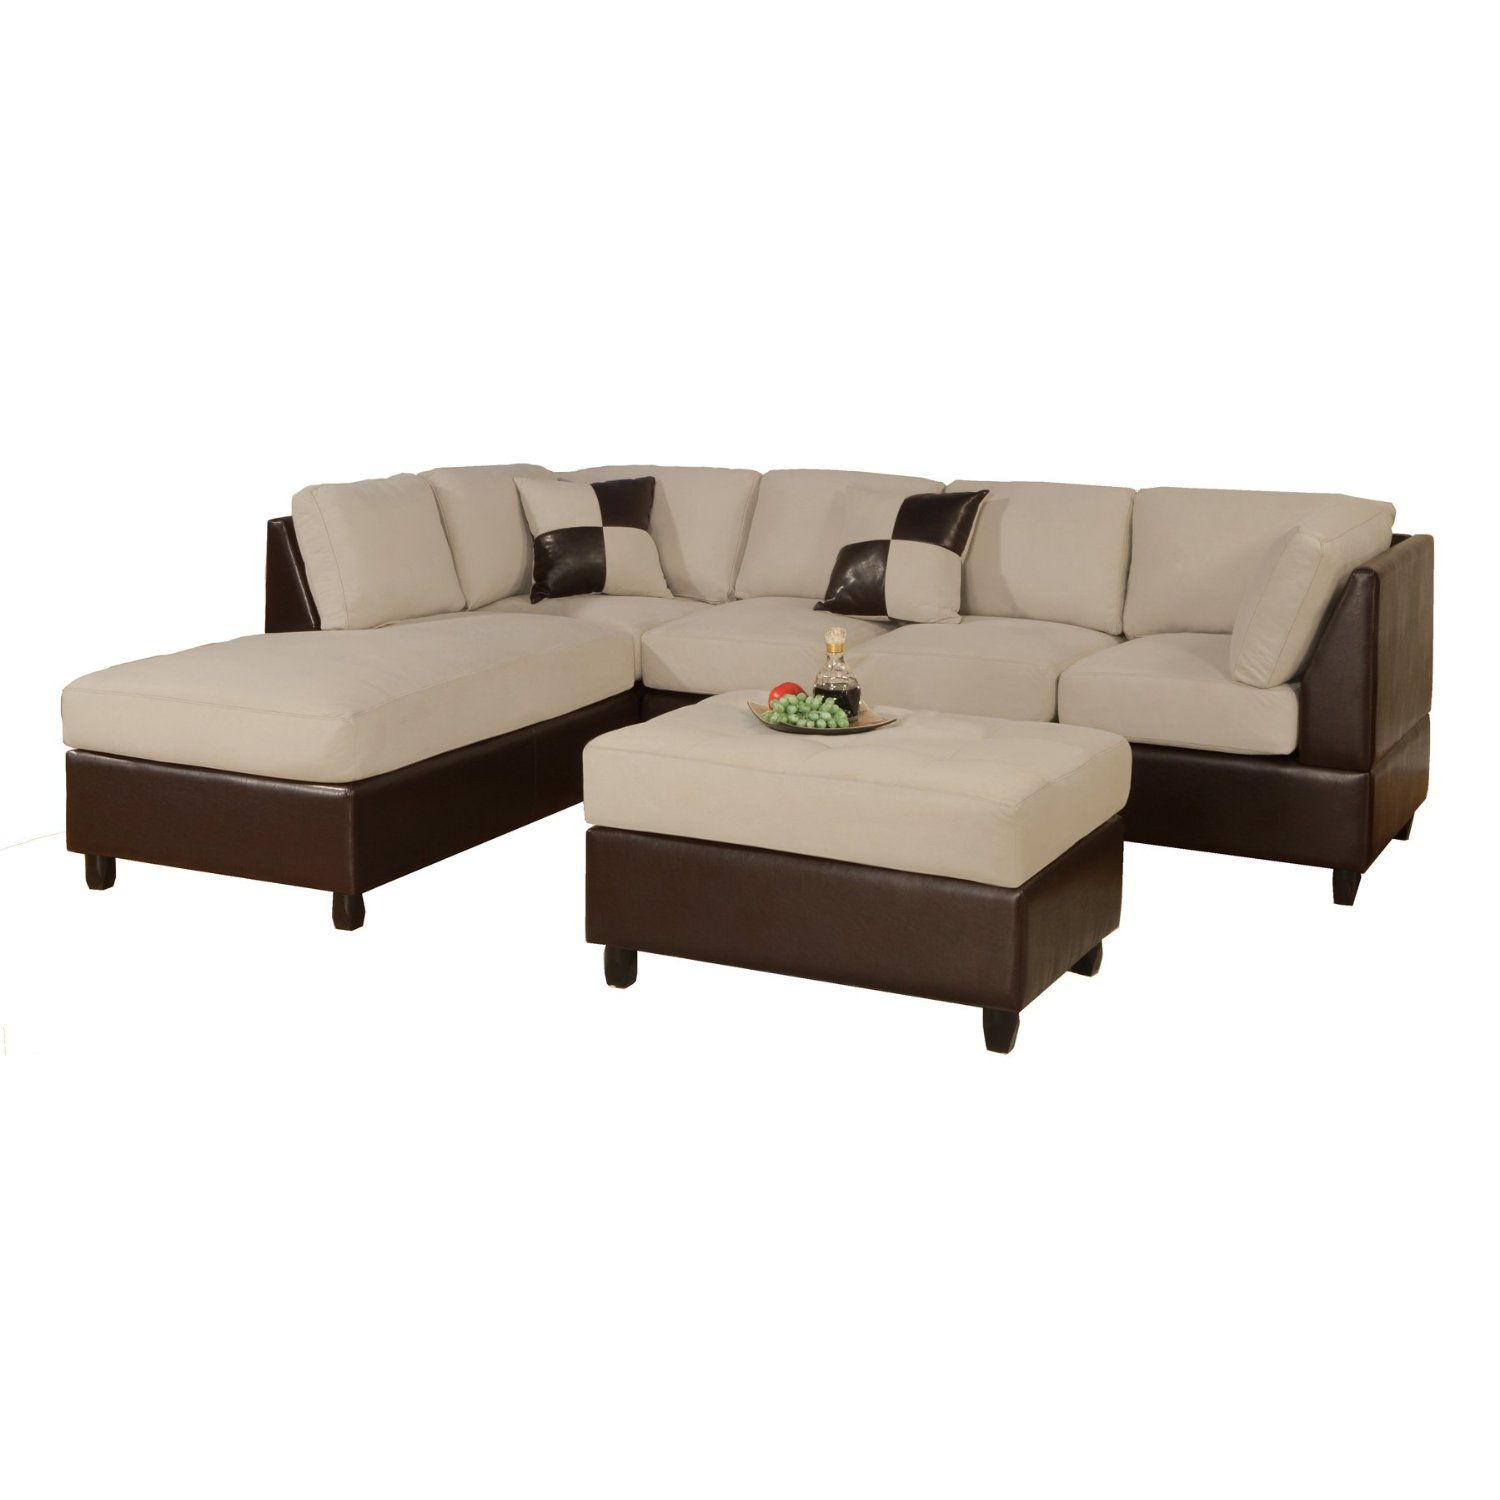 Best If We Get Separate Recliners 3 Piece Sectional Sofa Sectional Sofa Couch Faux Leather 640 x 480